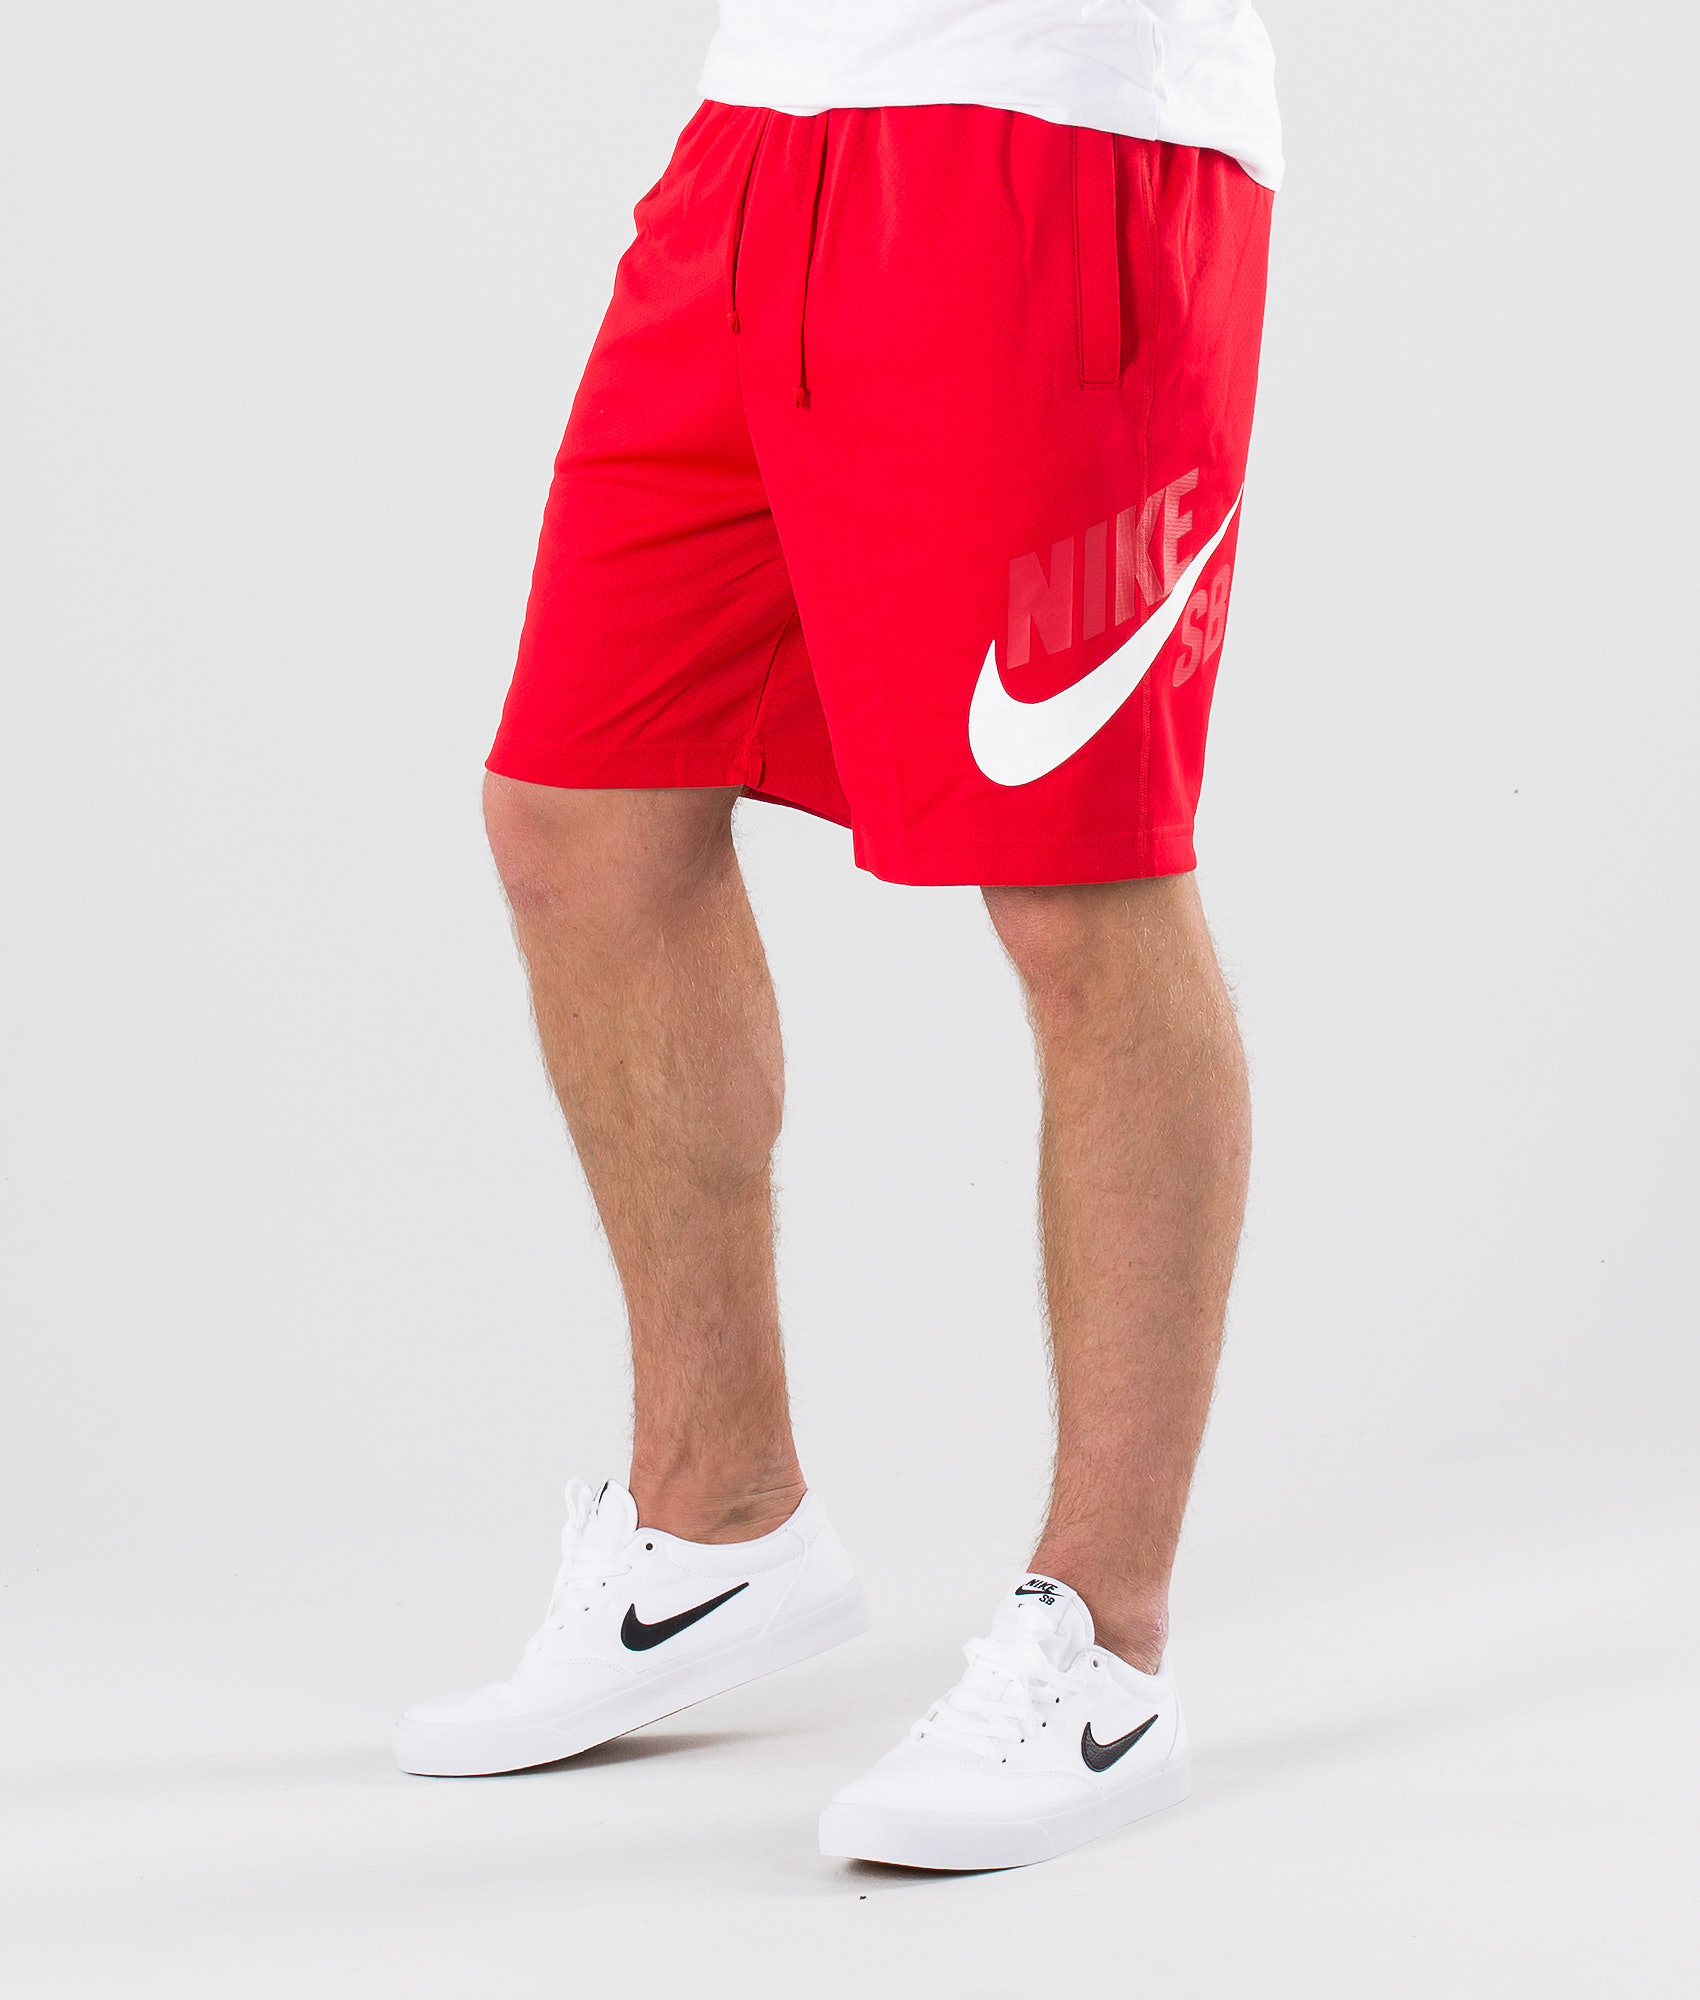 0f3e86f6b0 Nike SB Dry Hbr Sunday Short Shorts University Red/White - Ridestore.com